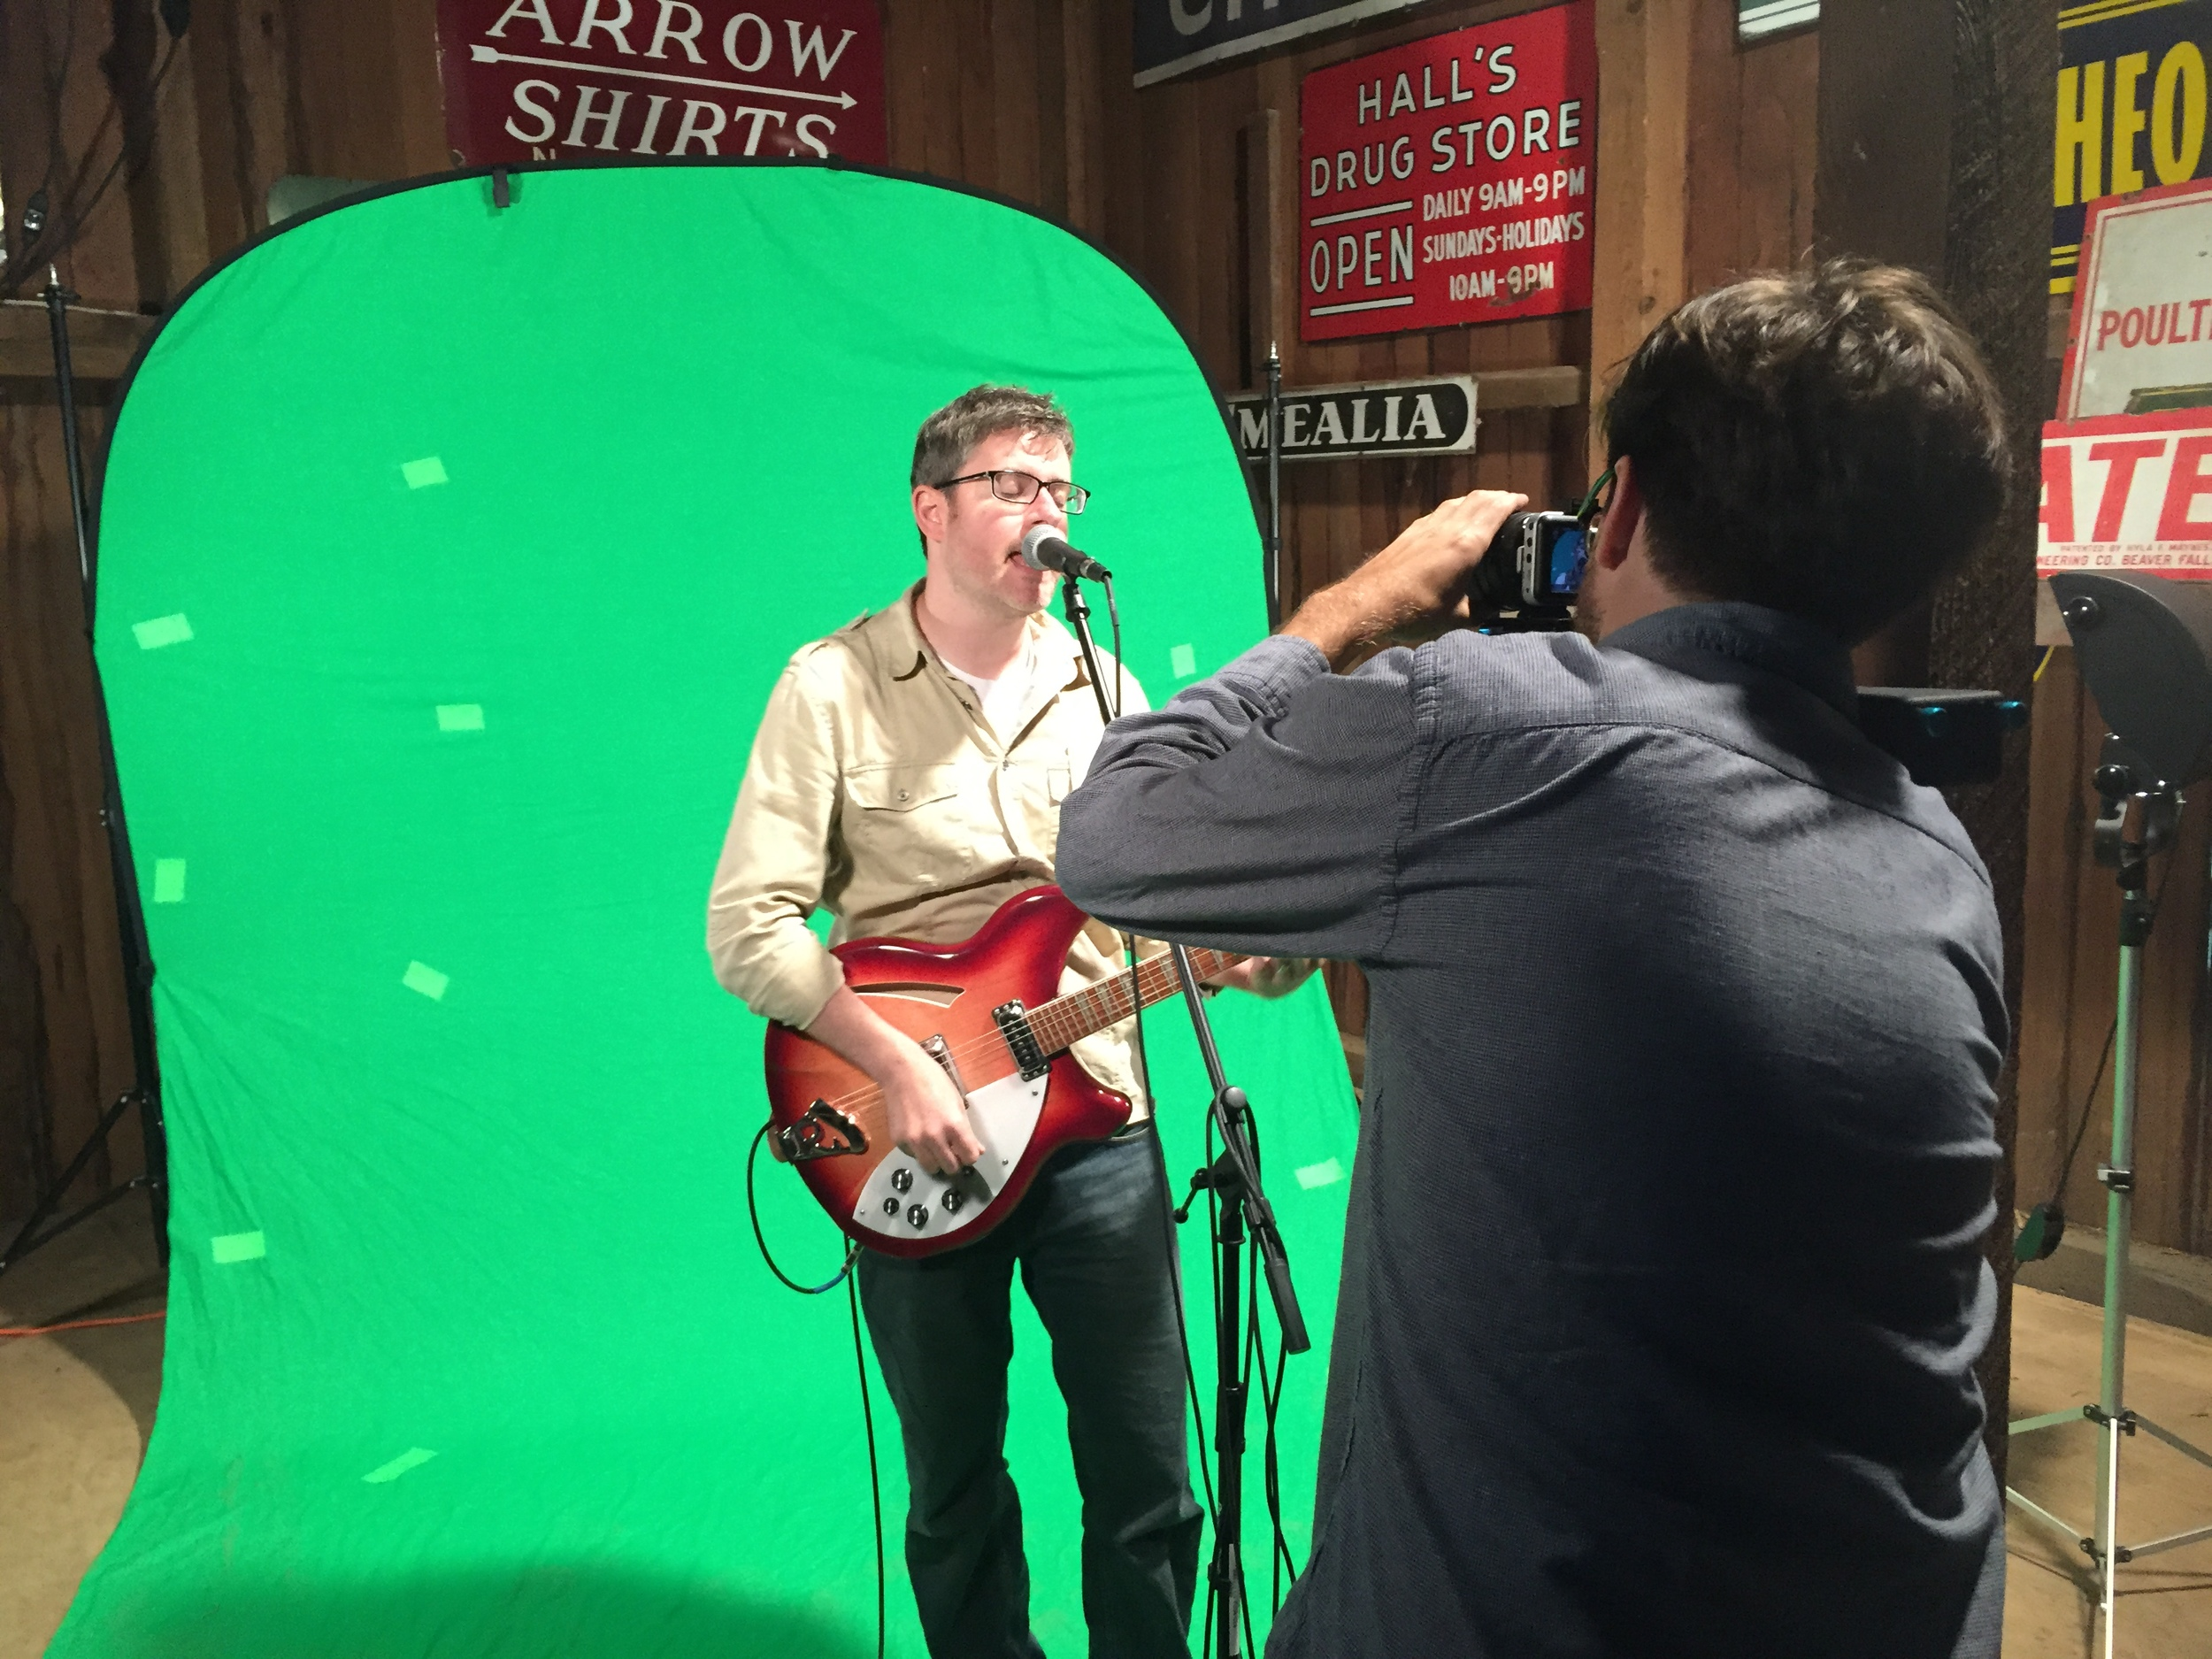 The green screen was used so that I could separate David, the lead singer, from the background. The idea was to foreshadow the latter half of the video by flashing different elements in the background, and ultimately, transport David to another realm.